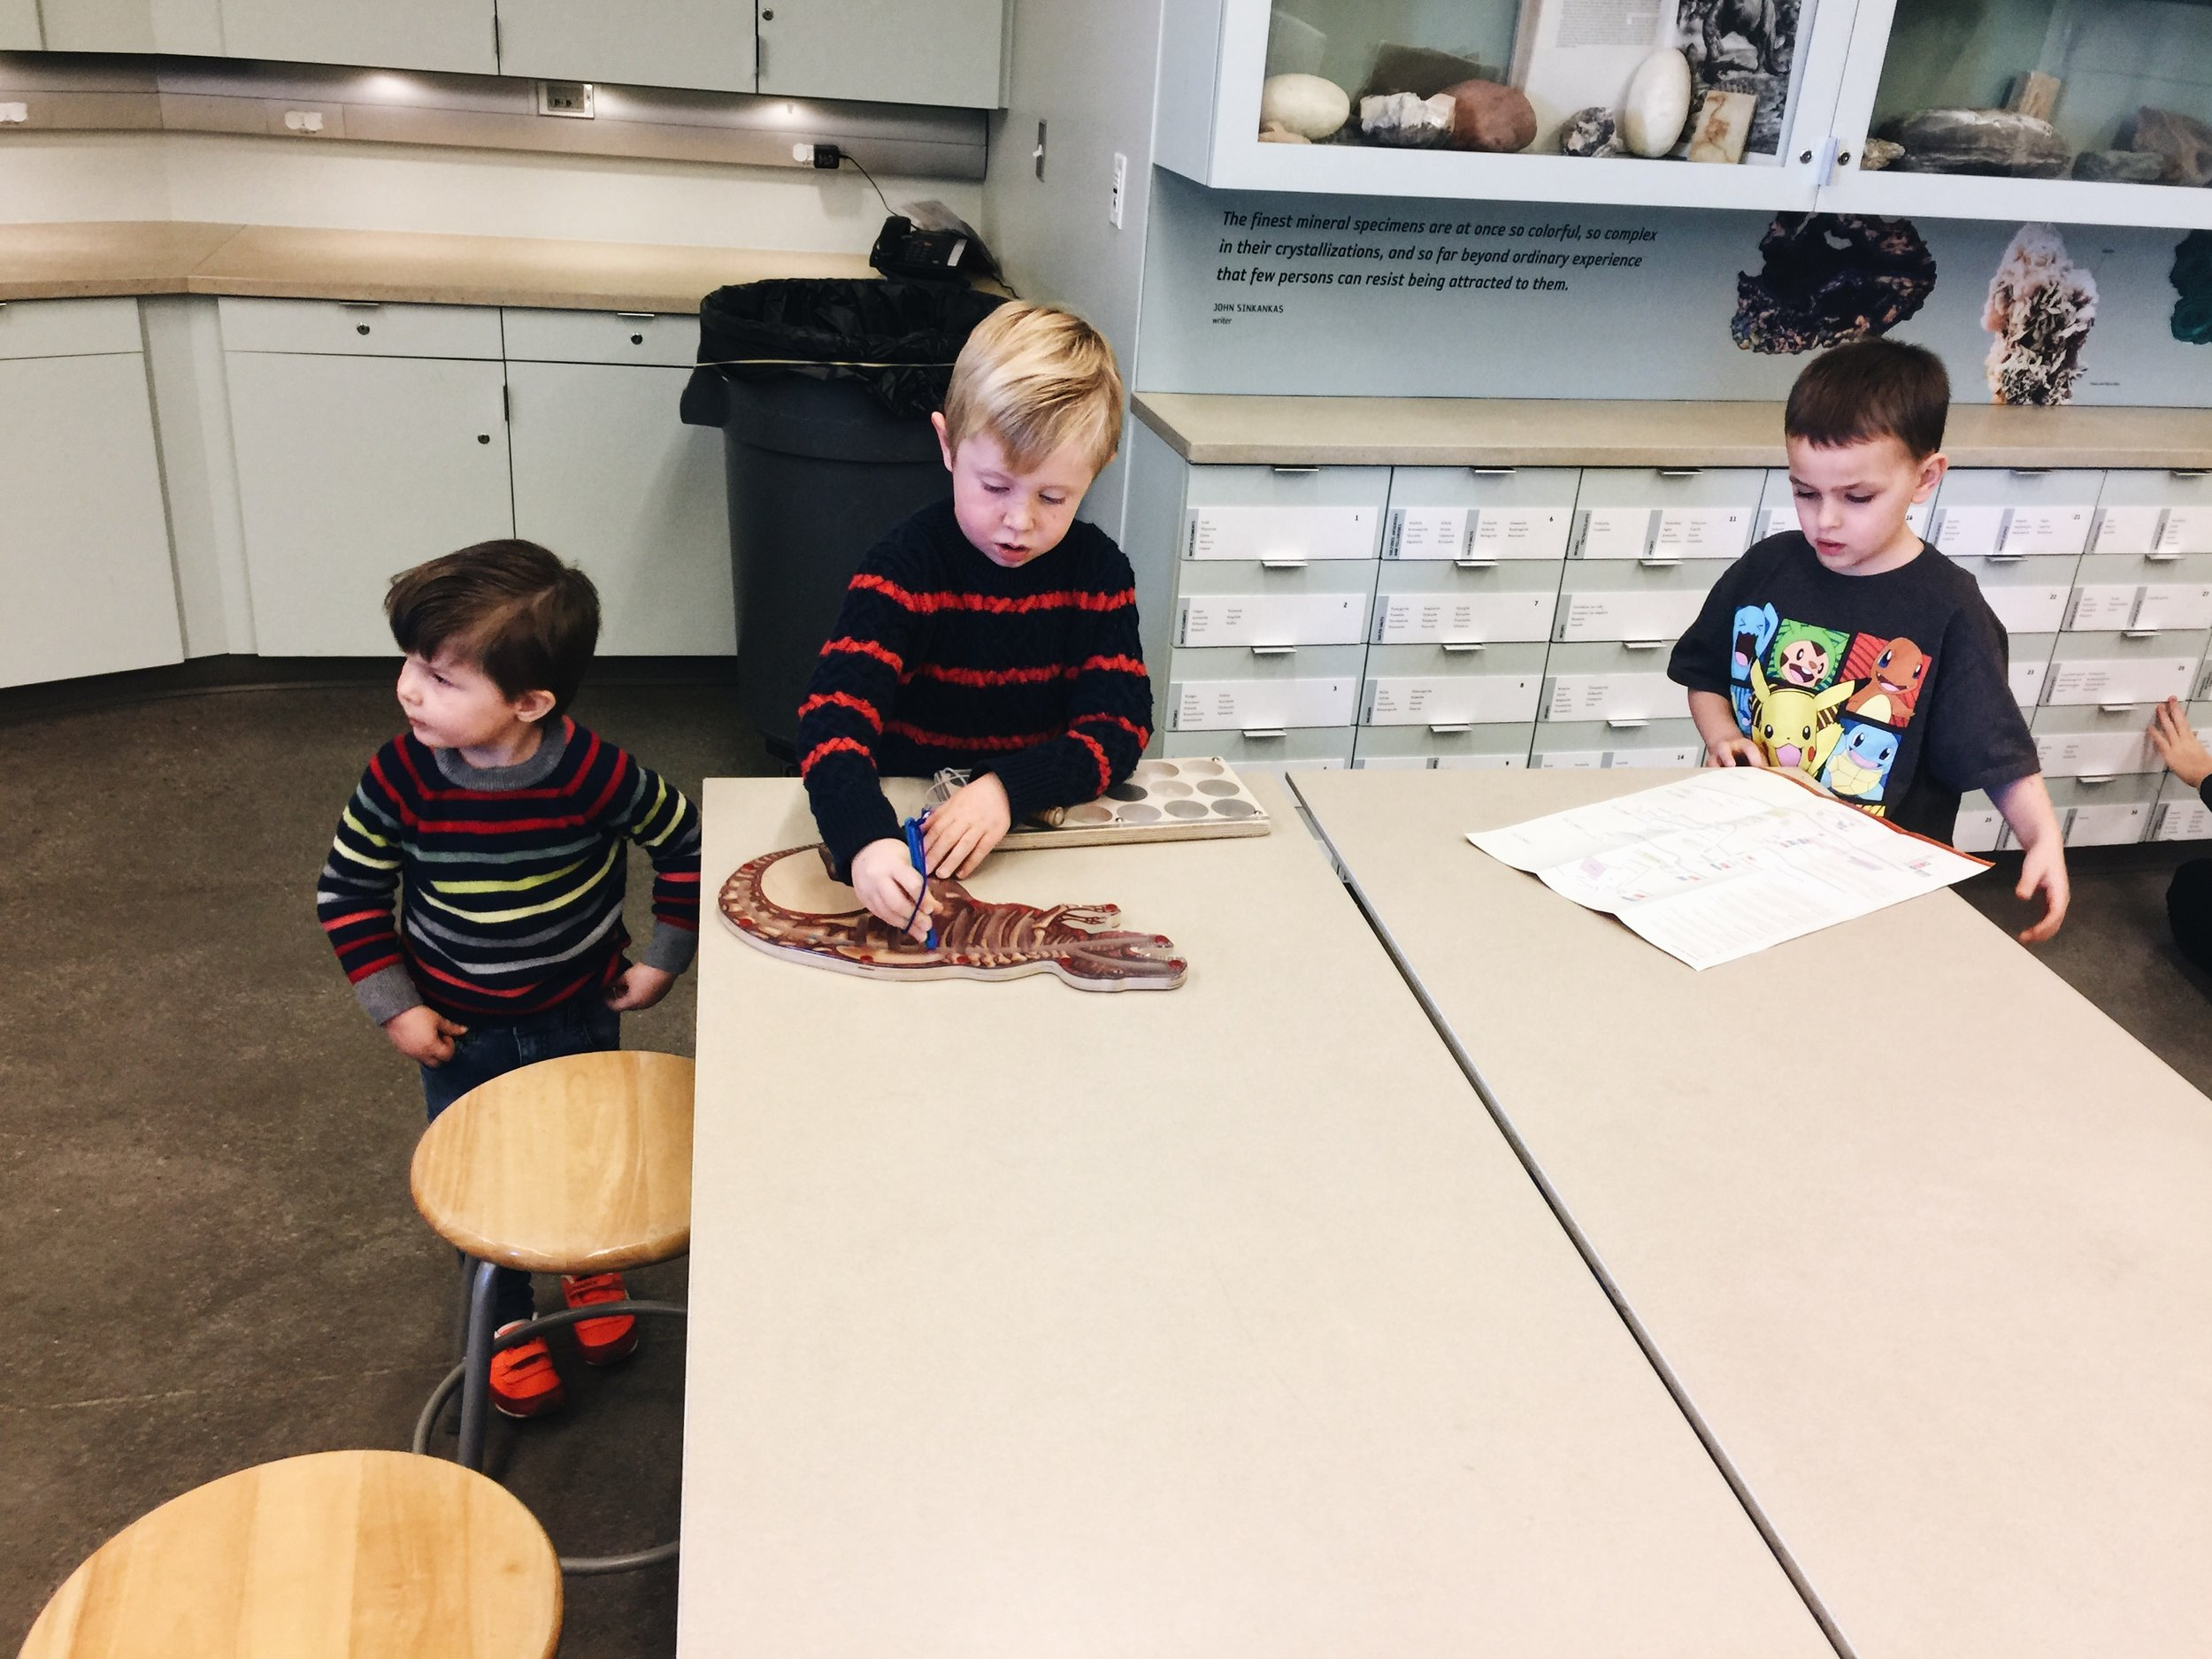 """This """"lab"""" is so neat! So many interactive items for them to explore."""